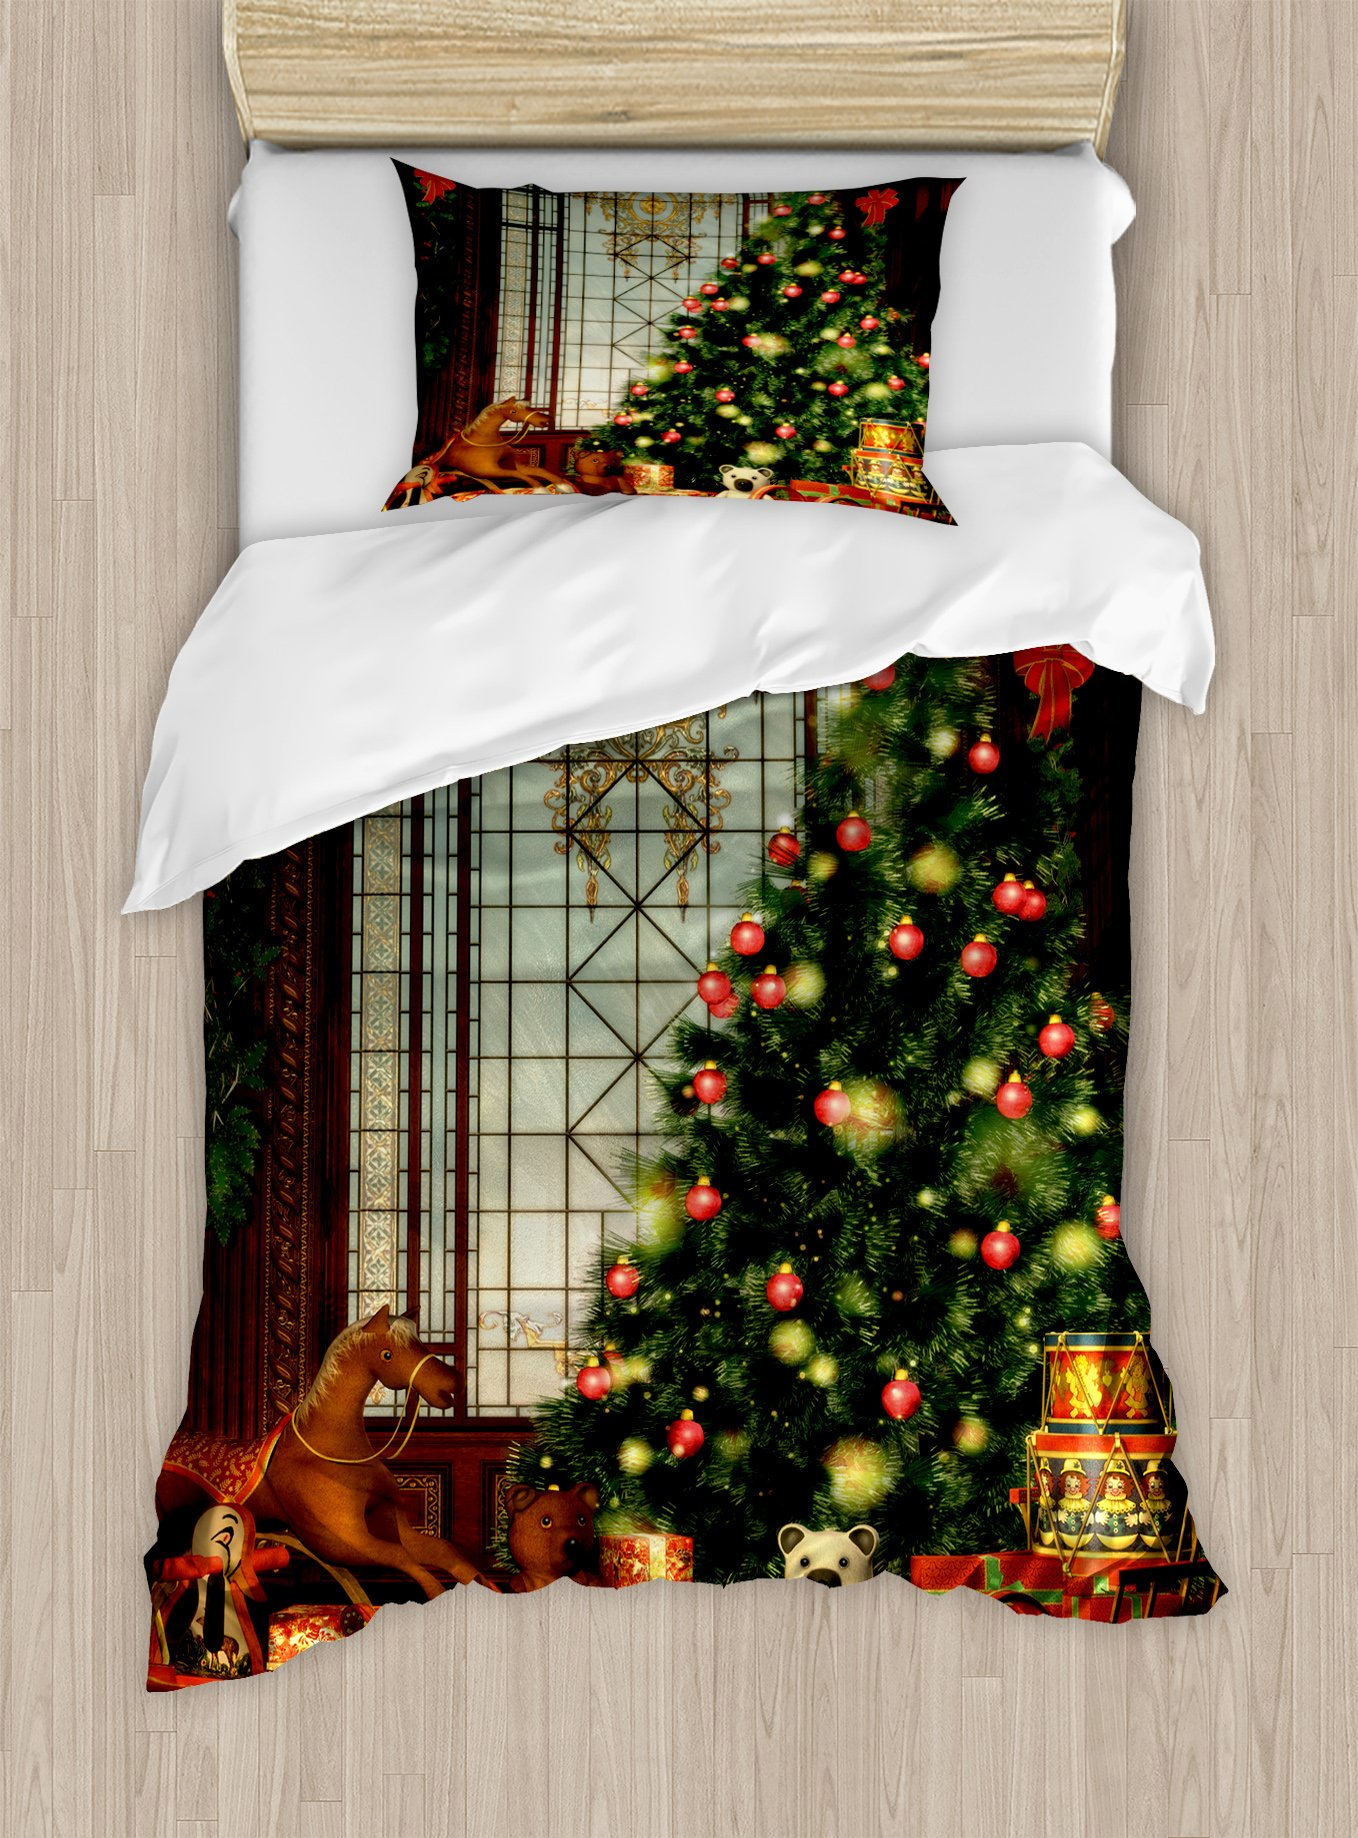 Ambesonne Christmas Duvet Cover Set Twin Size, Magical Vintage Ambiance Big Old Fashioned Window Xmas Tree Various Presents, Decorative 2 Piece Bedding Set with 1 Pillow Sham, Brown Red Green